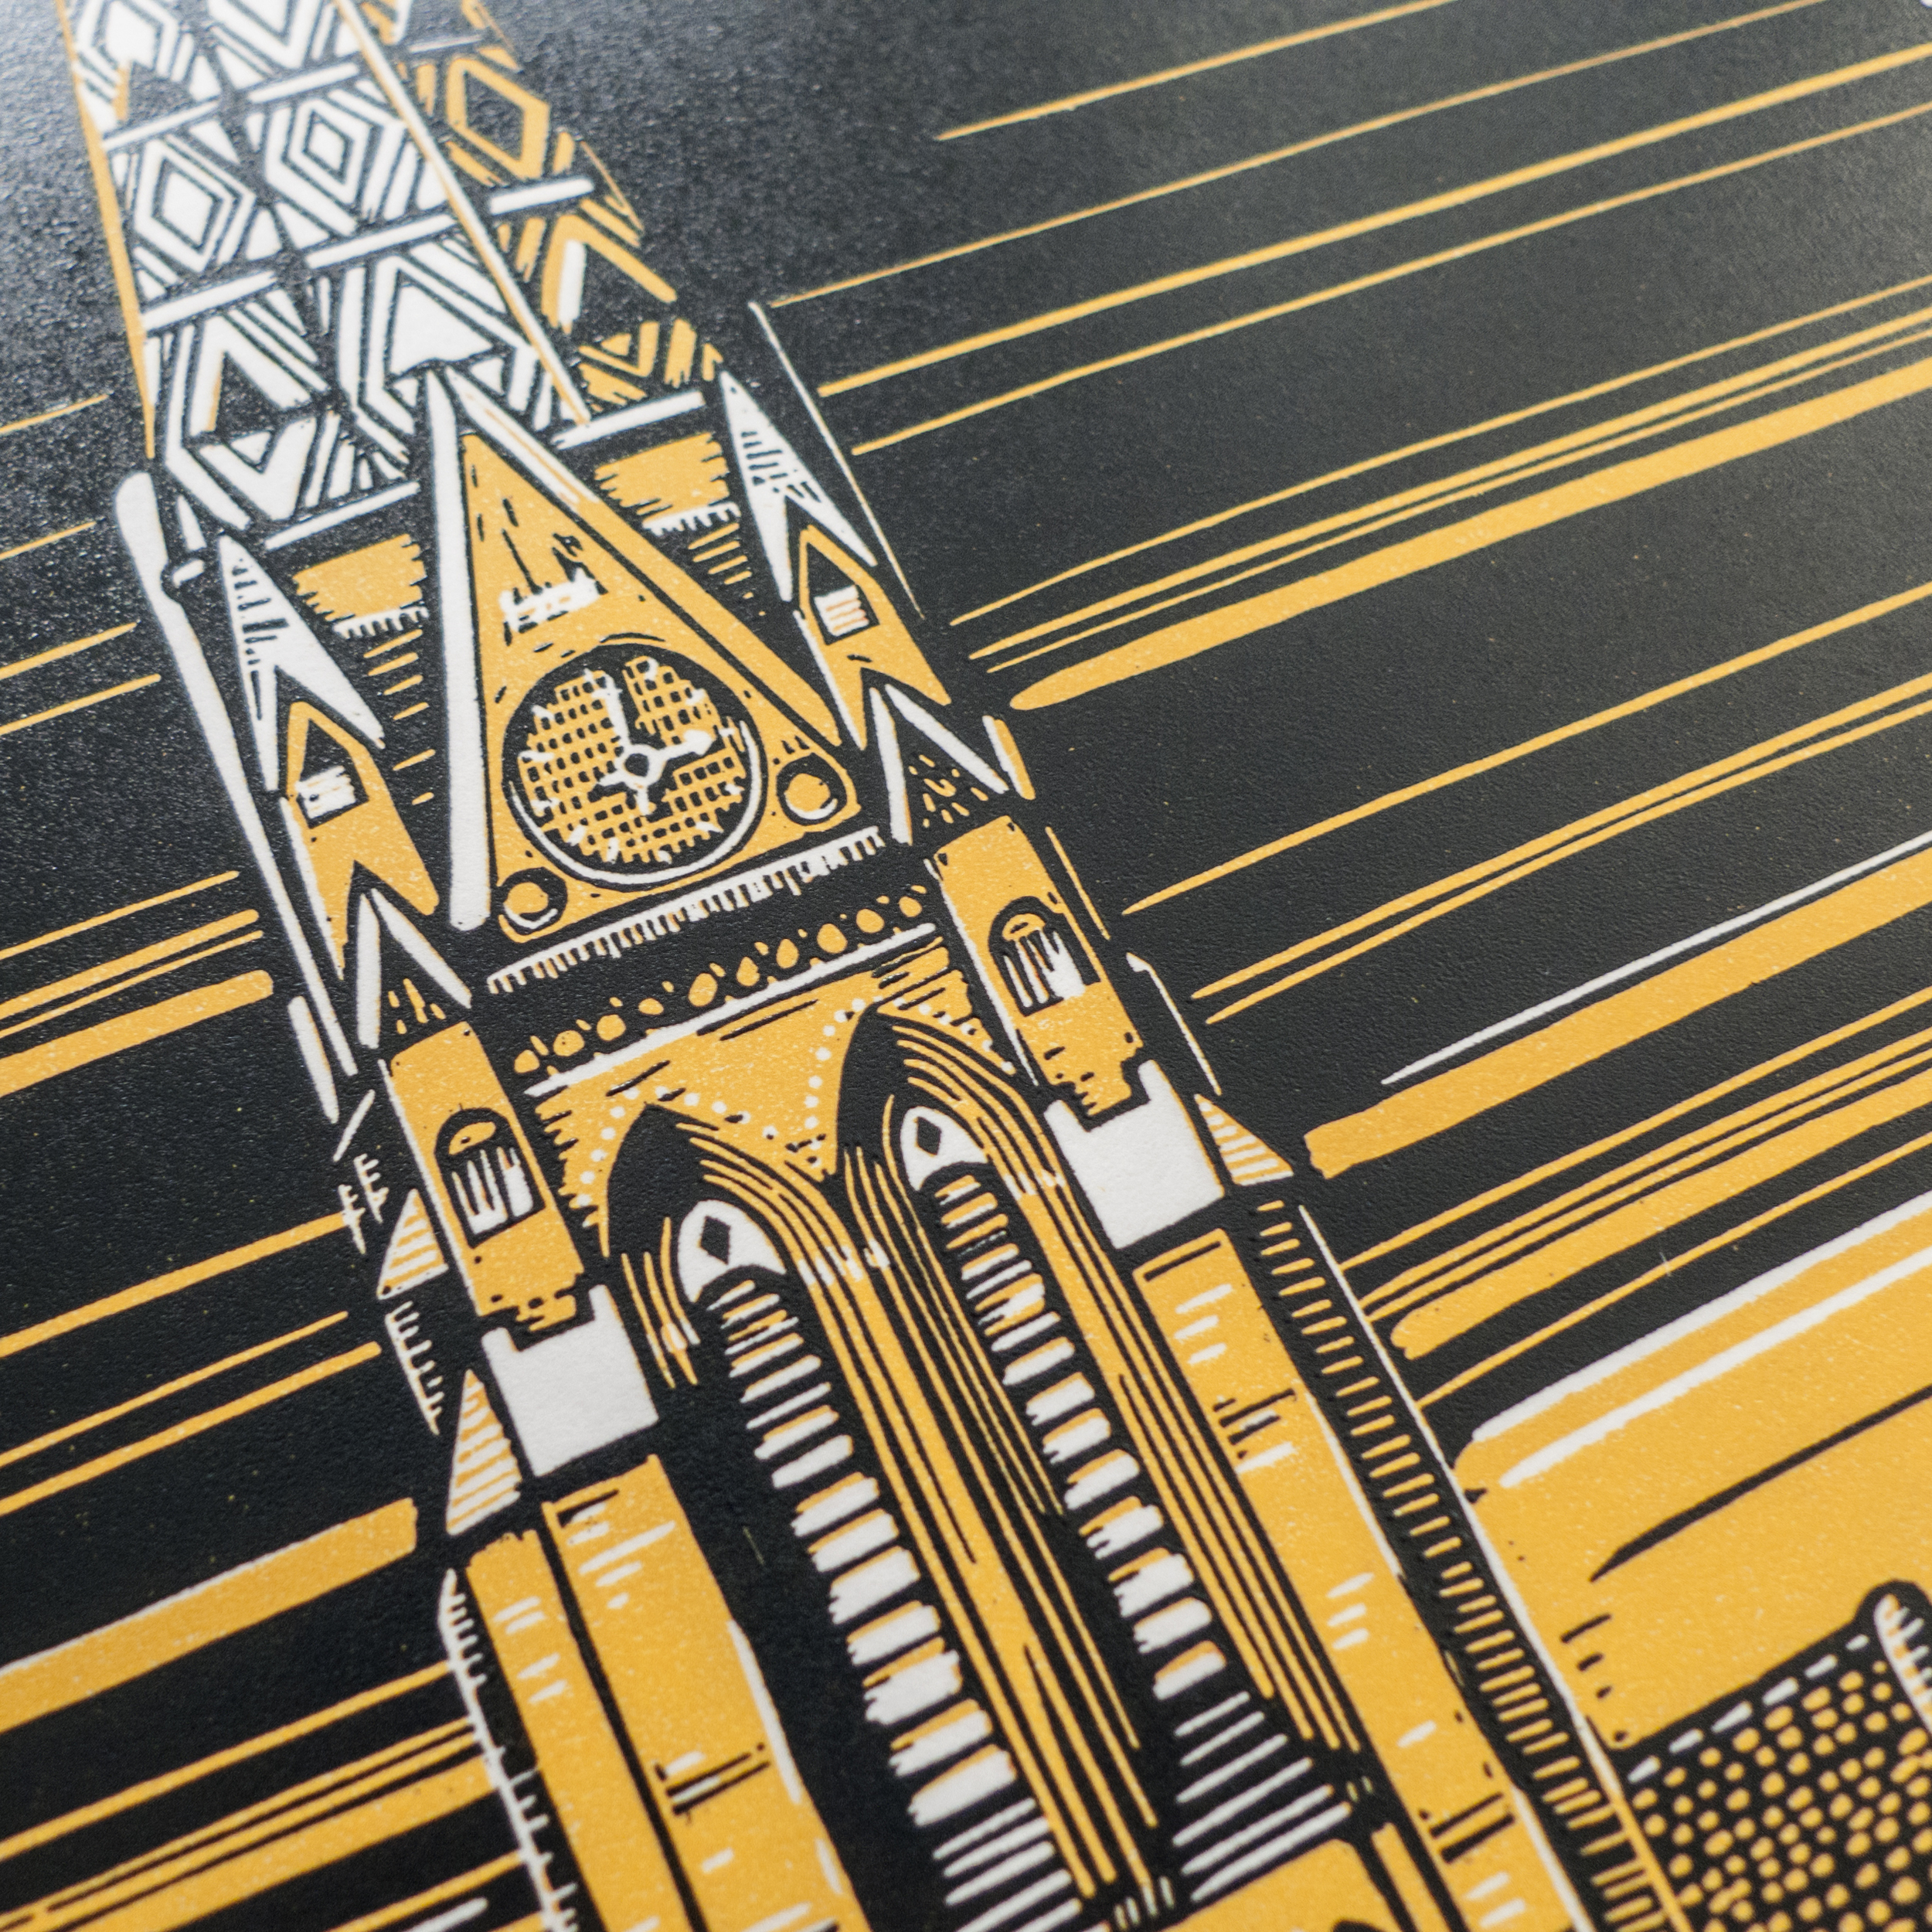 stockholm-st-johannes-kyrka-church-reduction-linocut-yellow-detail-a.jpg